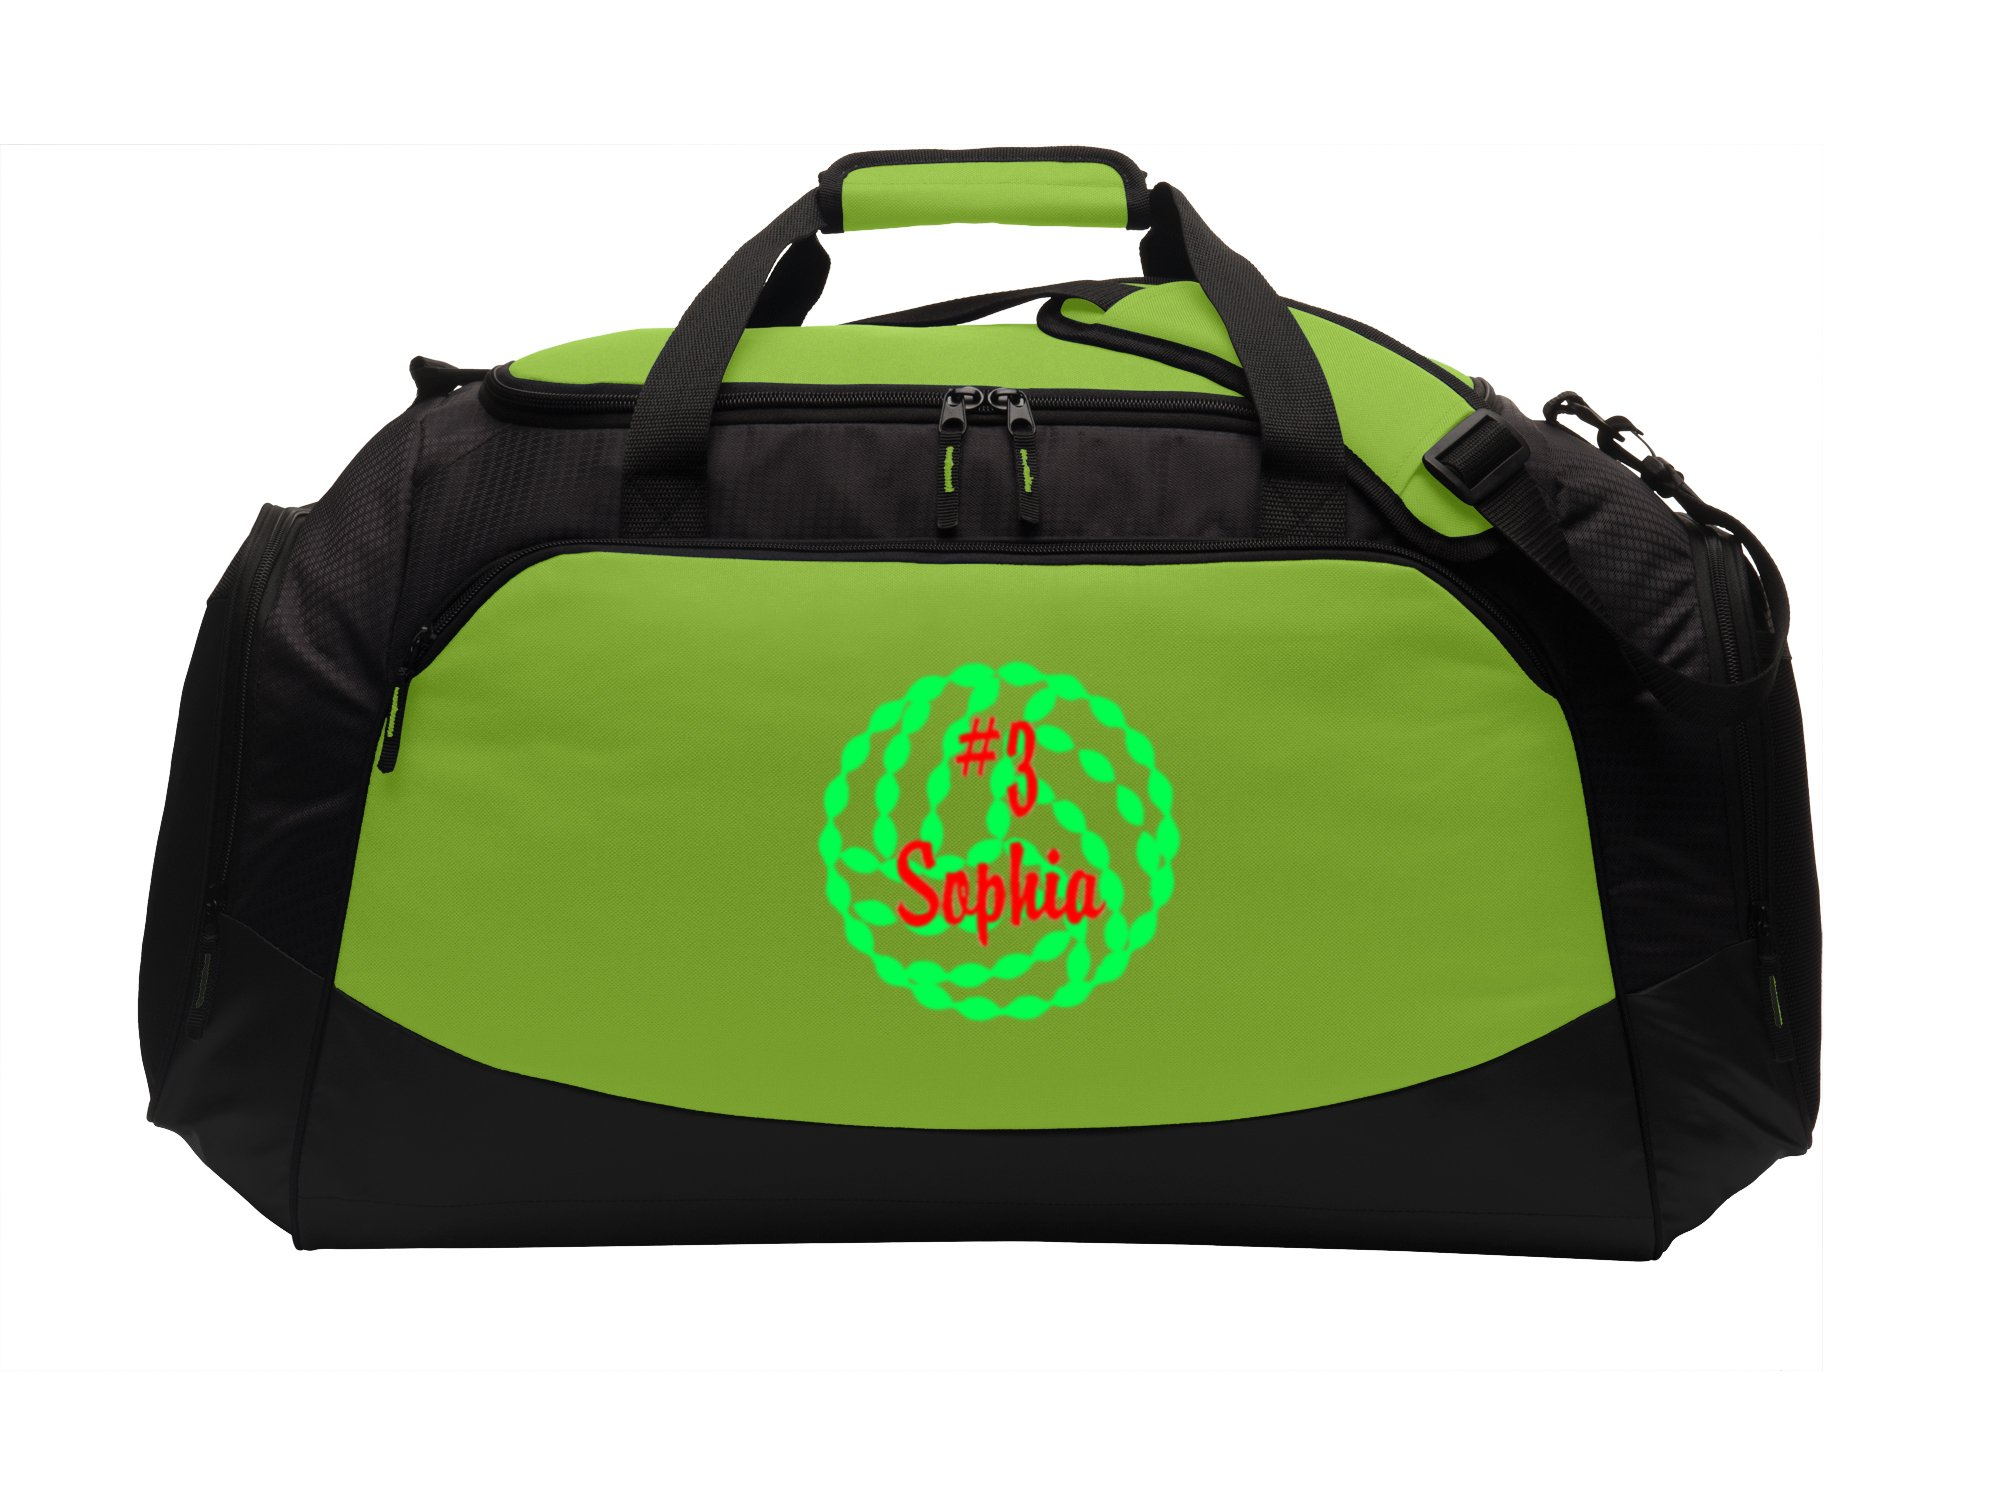 Personalized Volleyball Sports Bag with Customizable Embroidered Monogram Design | Waterproof Large Active Gym Duffel Bag with Custom Text (Lime Shock/Black)